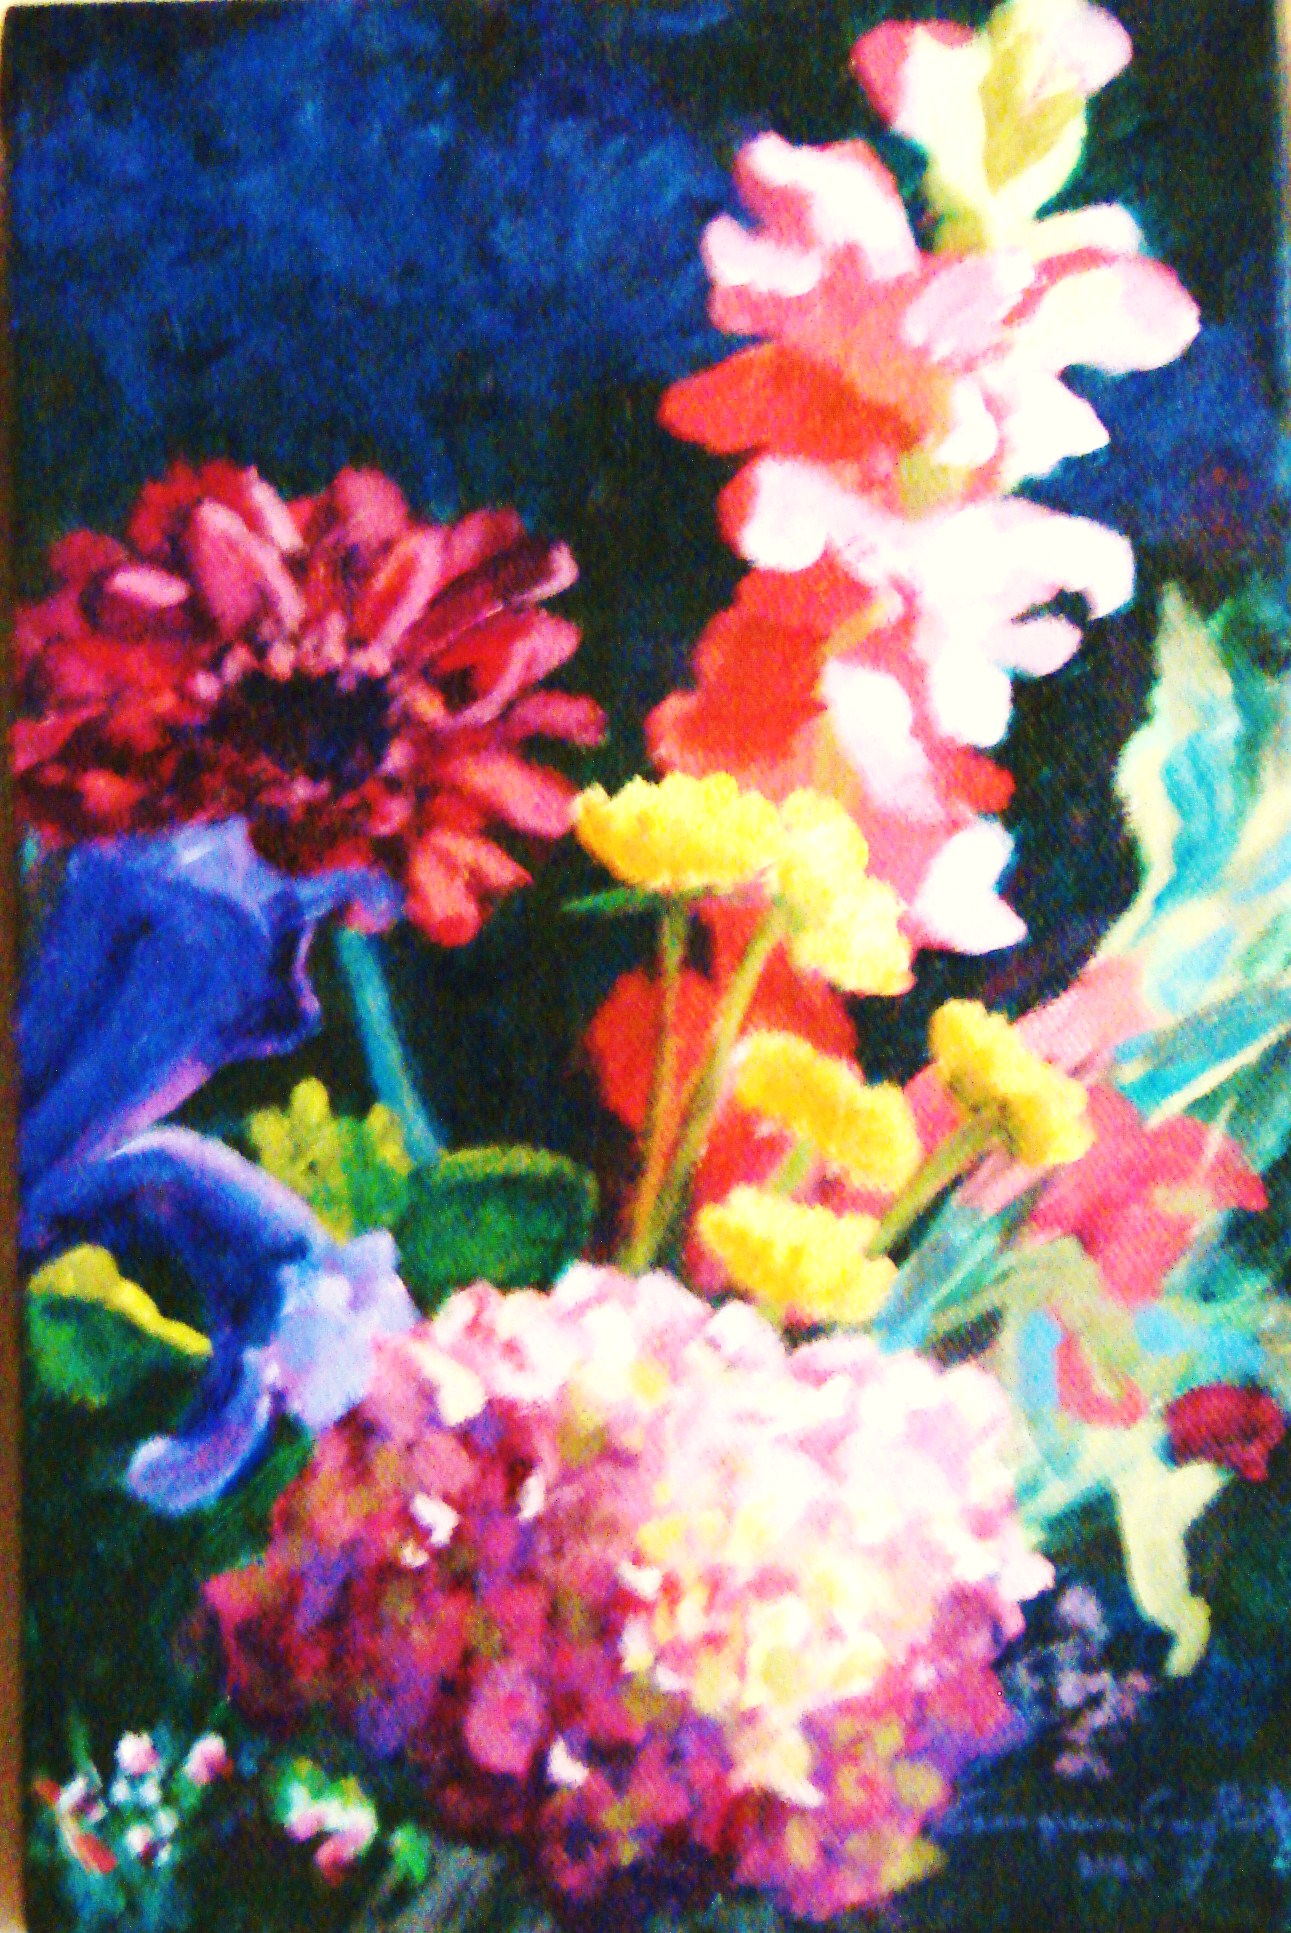 MOTHER'S DAY FLOWERS #4 ACRYLIC ON CANVAS 9X6.JPG